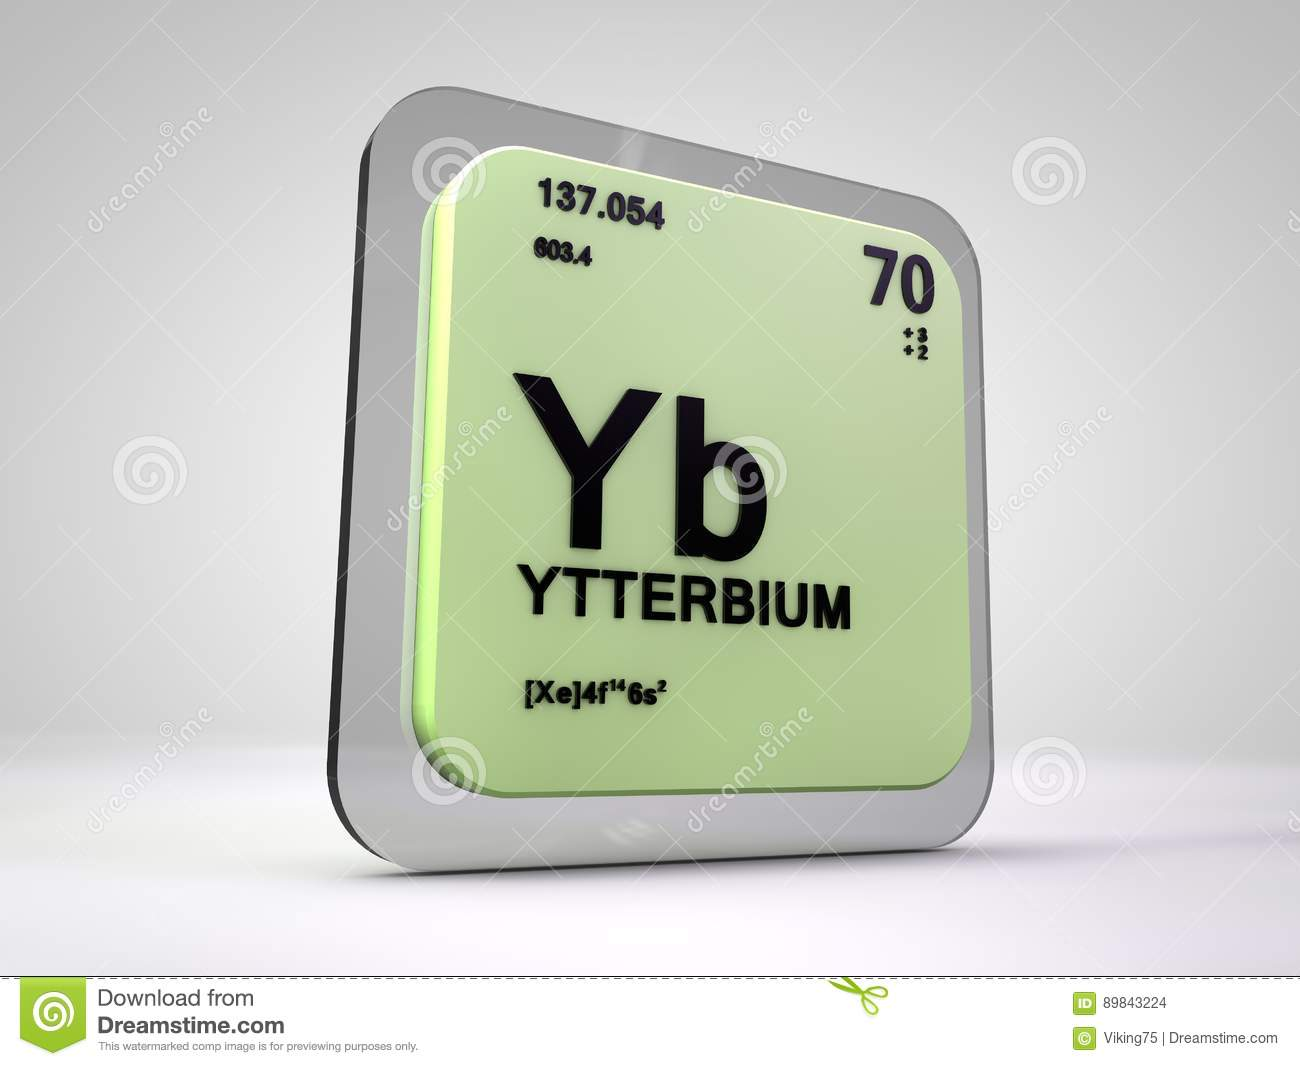 Ytterbium yb chemical element periodic table stock illustration download comp urtaz Gallery